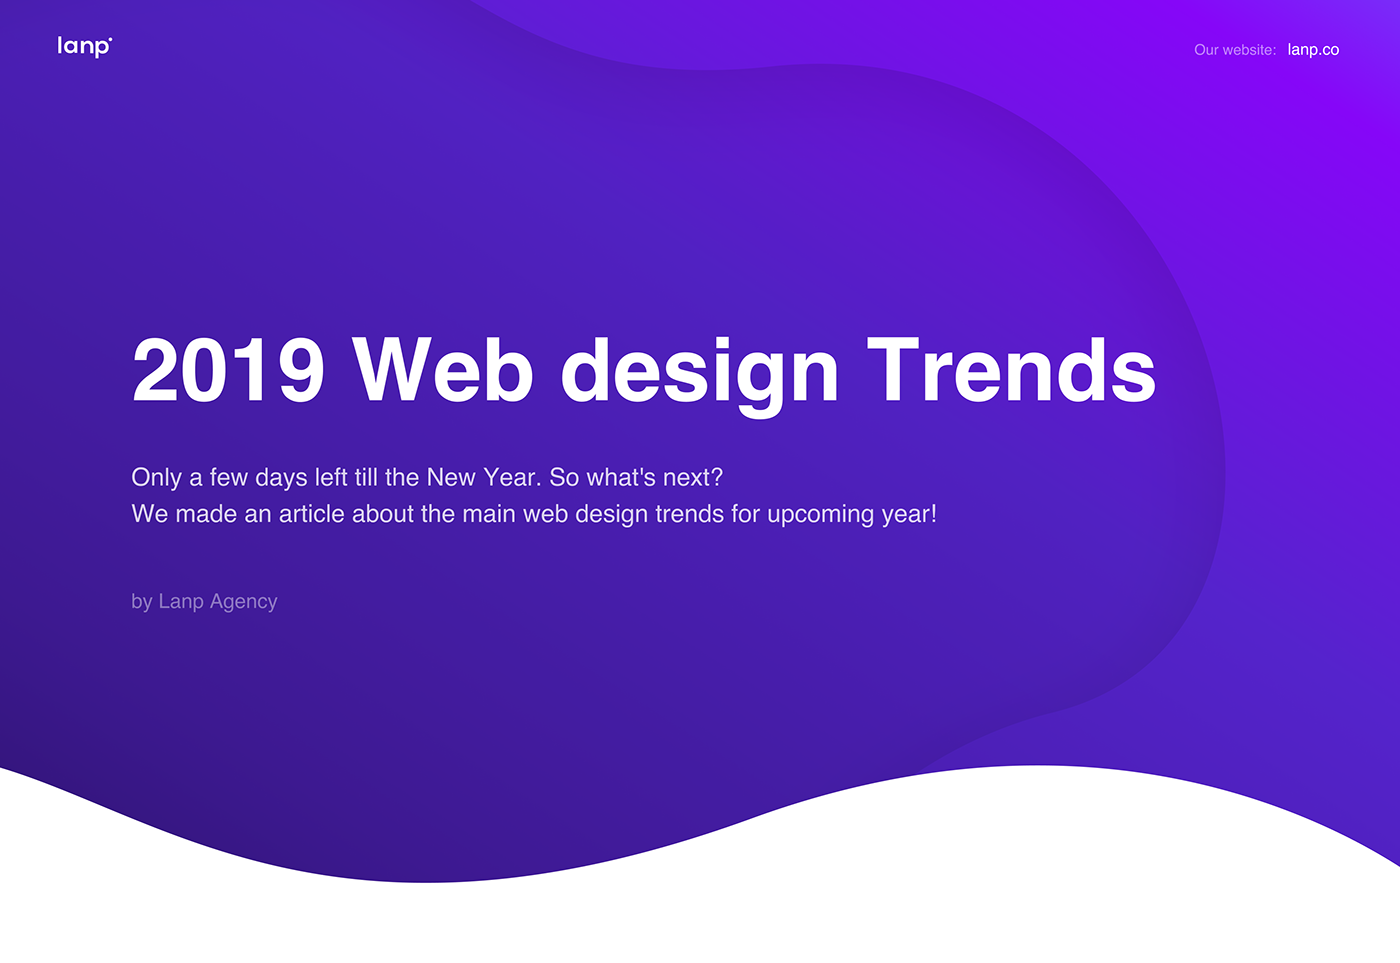 DESIGN • TRENDS • 2019 • WEB • UI/UX • 3D • ANIMATION on Behance